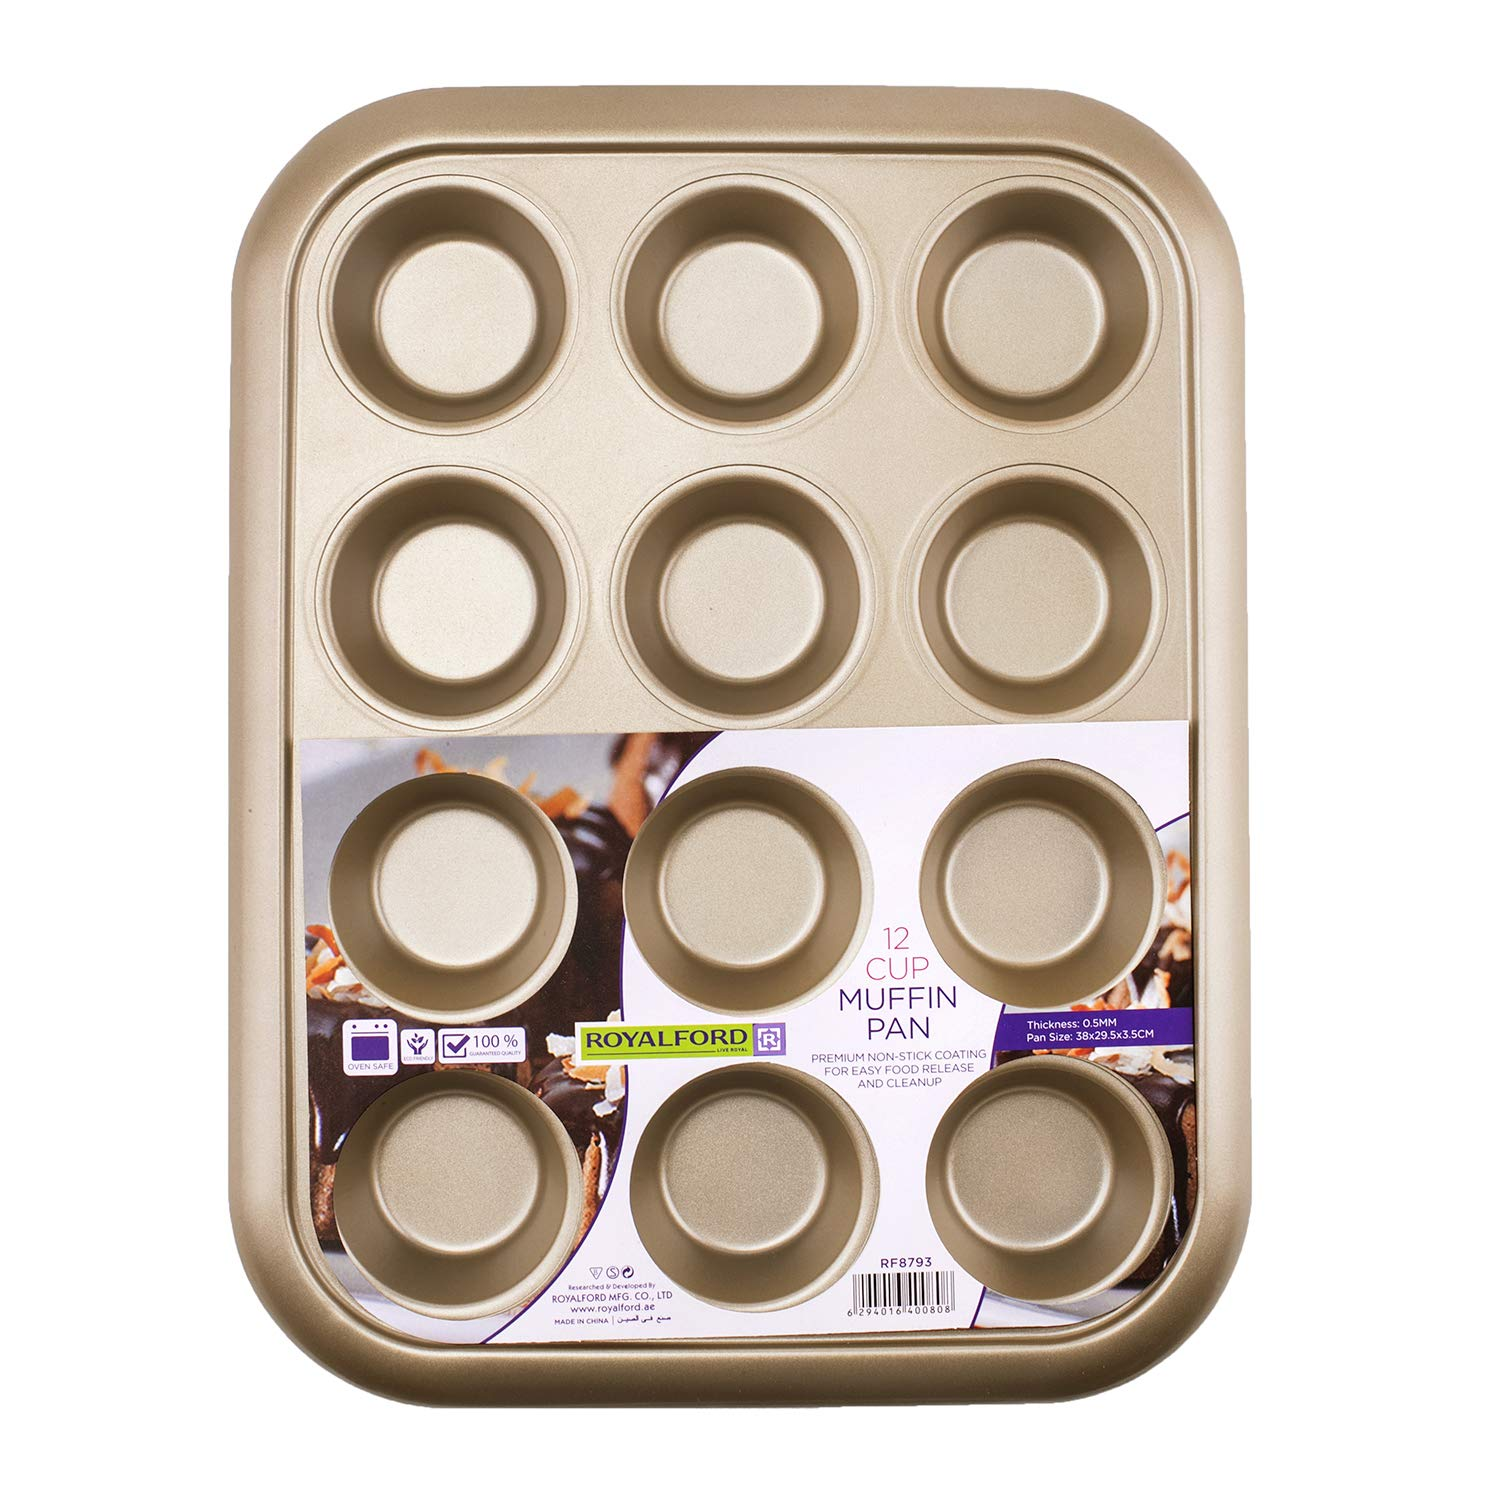 Royalford 12 Cup Muffin Pan, Oven-Safe Muffin and Cupcake Tray, Essential Non-Stick Yorkshire Pudding Tray for Baking